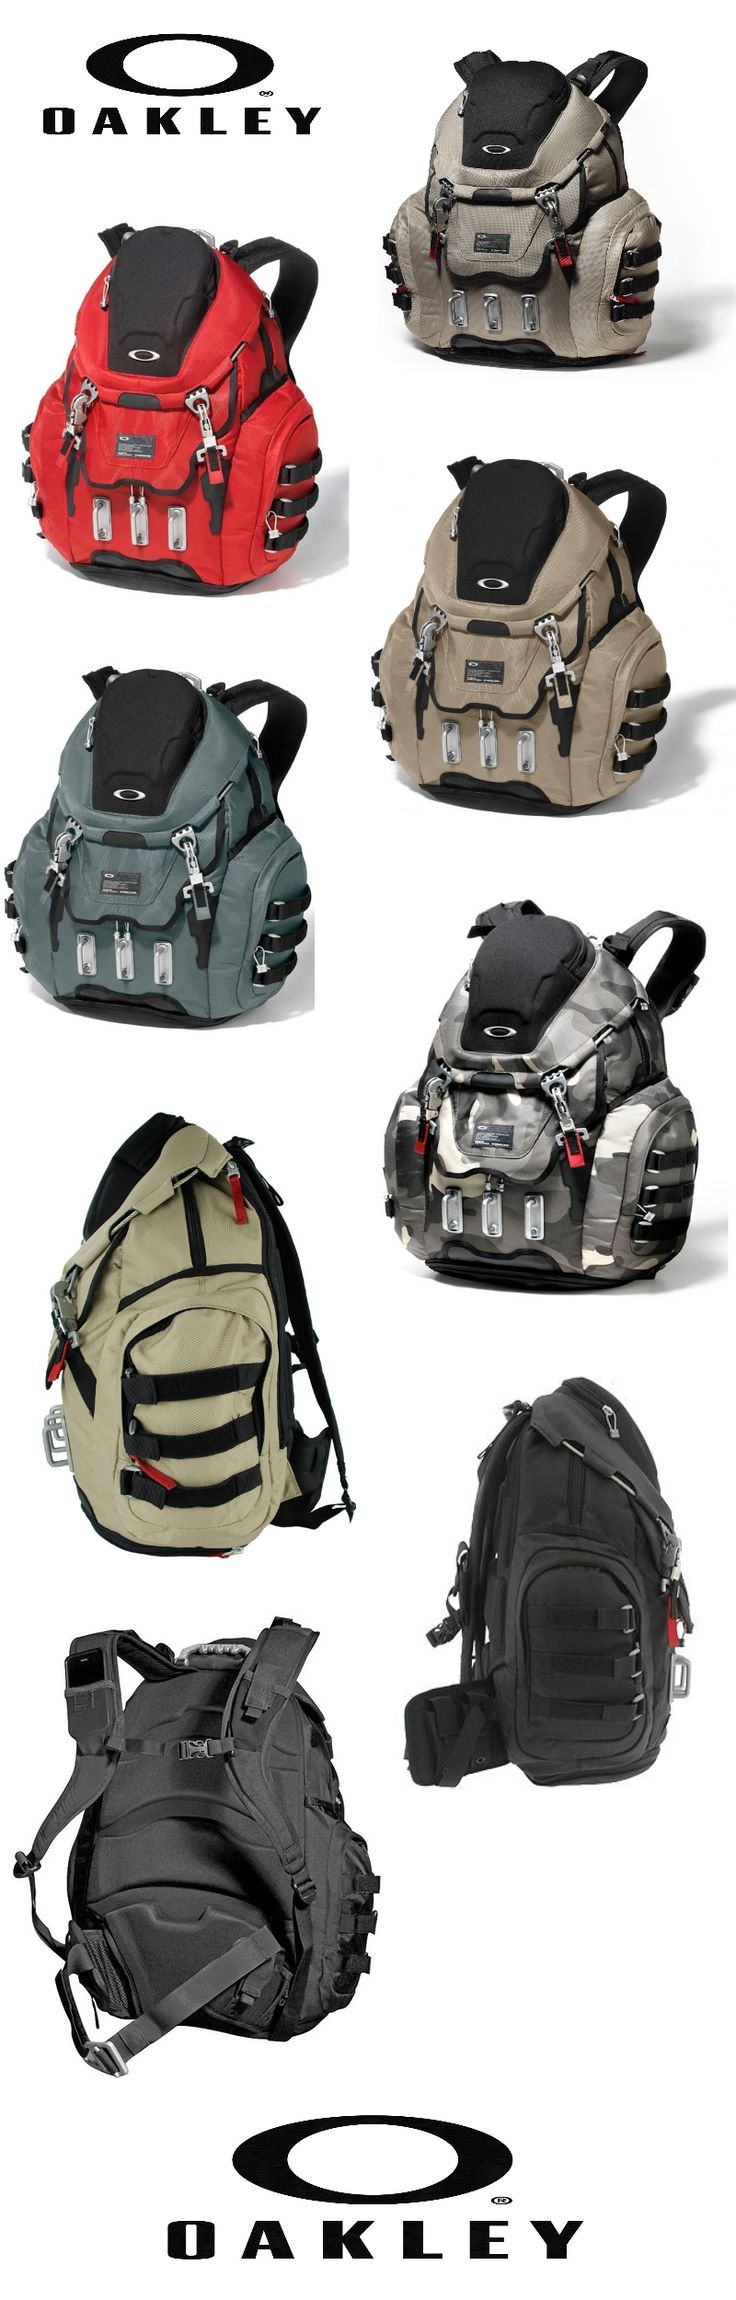 The 26 best My Baggage images on Pinterest | Oakley backpack ...